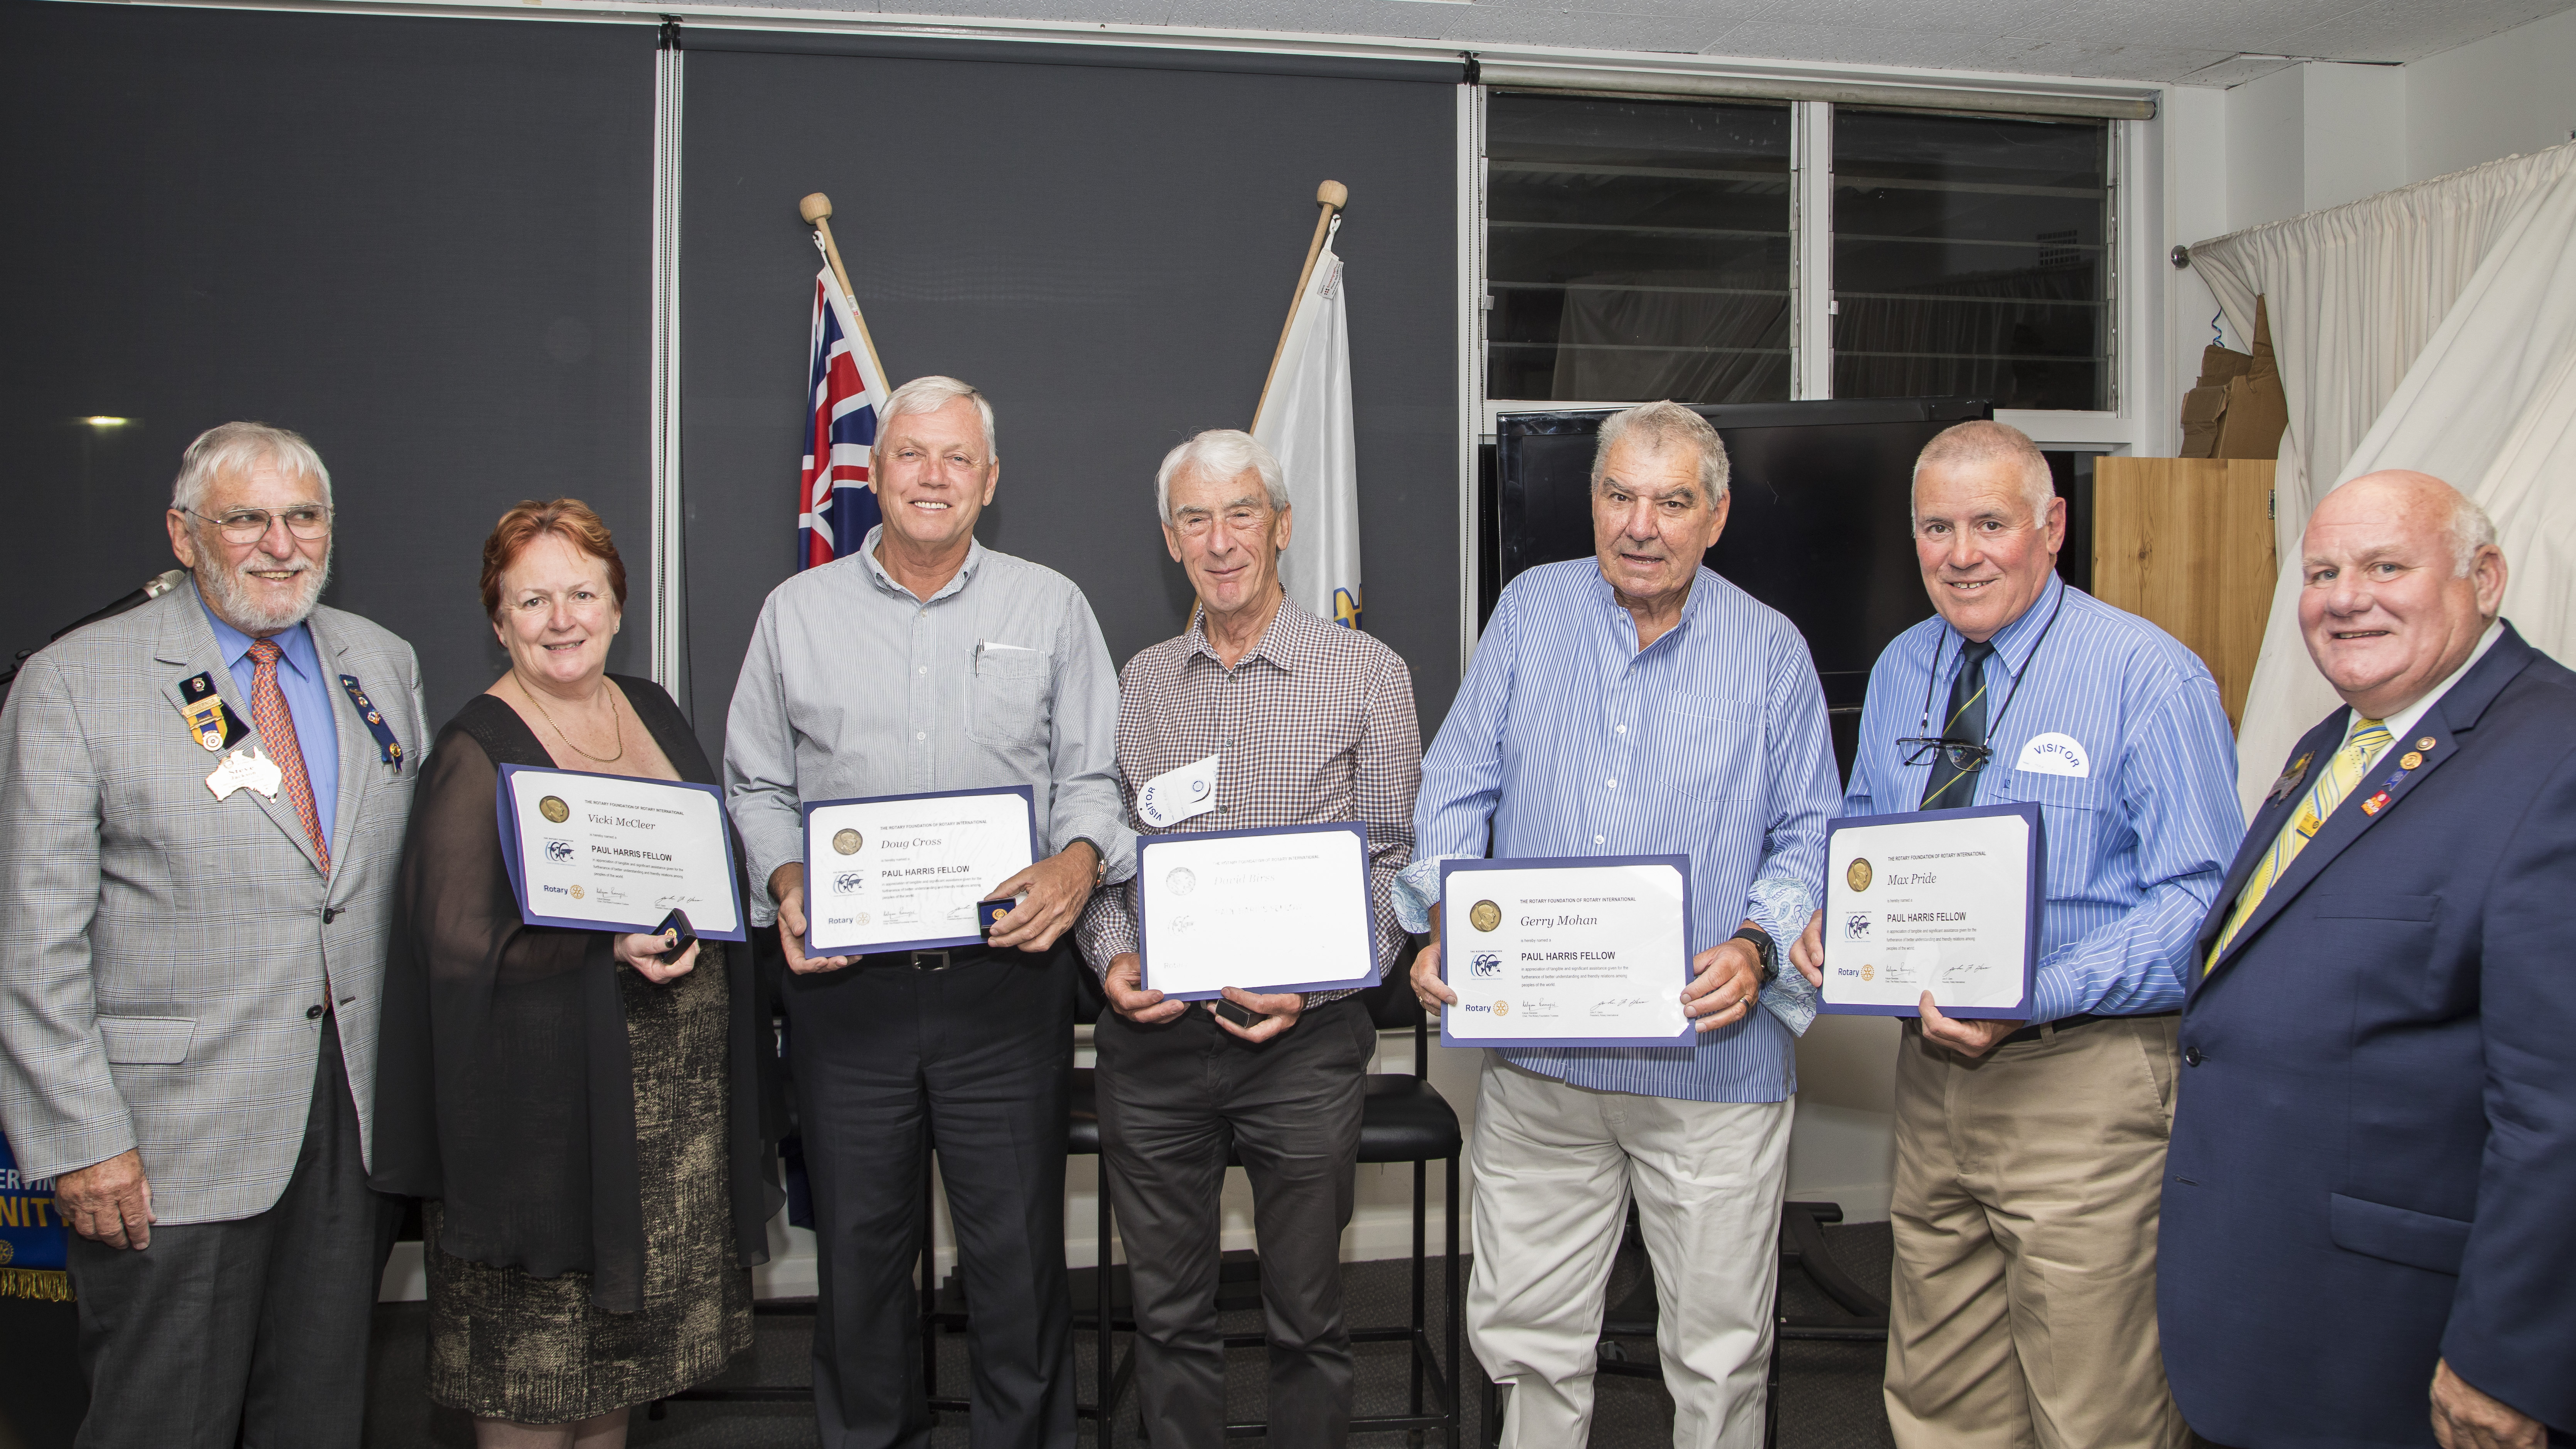 The five members of the Community honoured with the Paul Harris Fellow. Steve Jackson (District Governor), Vickie McCleer, Doug Cross, David Birss, Gerry Mohan, Max Pride, Peter Raynor (District Chair).   Photo by Henk Tobbe